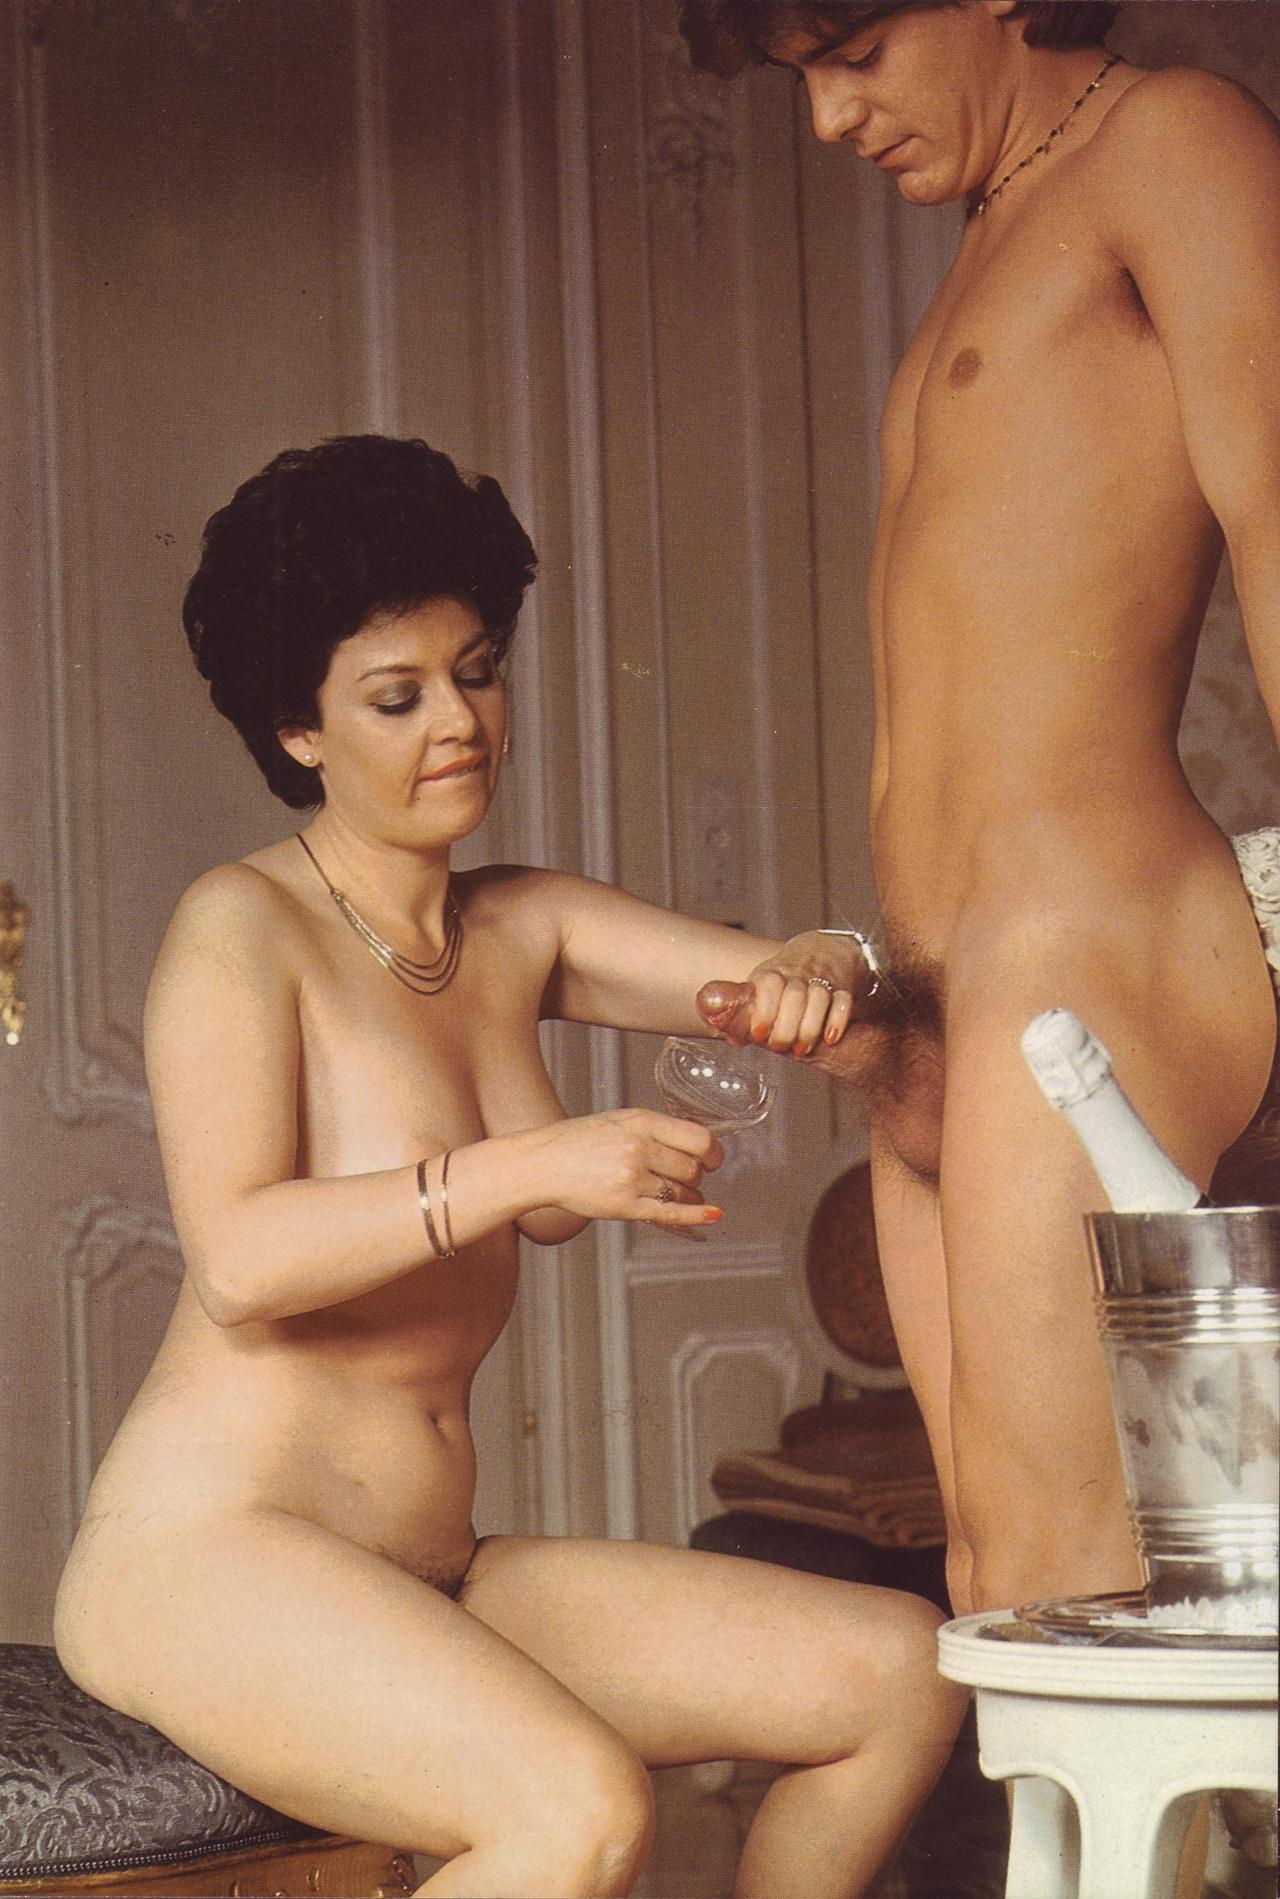 cfnm Tumblr handjob erotic